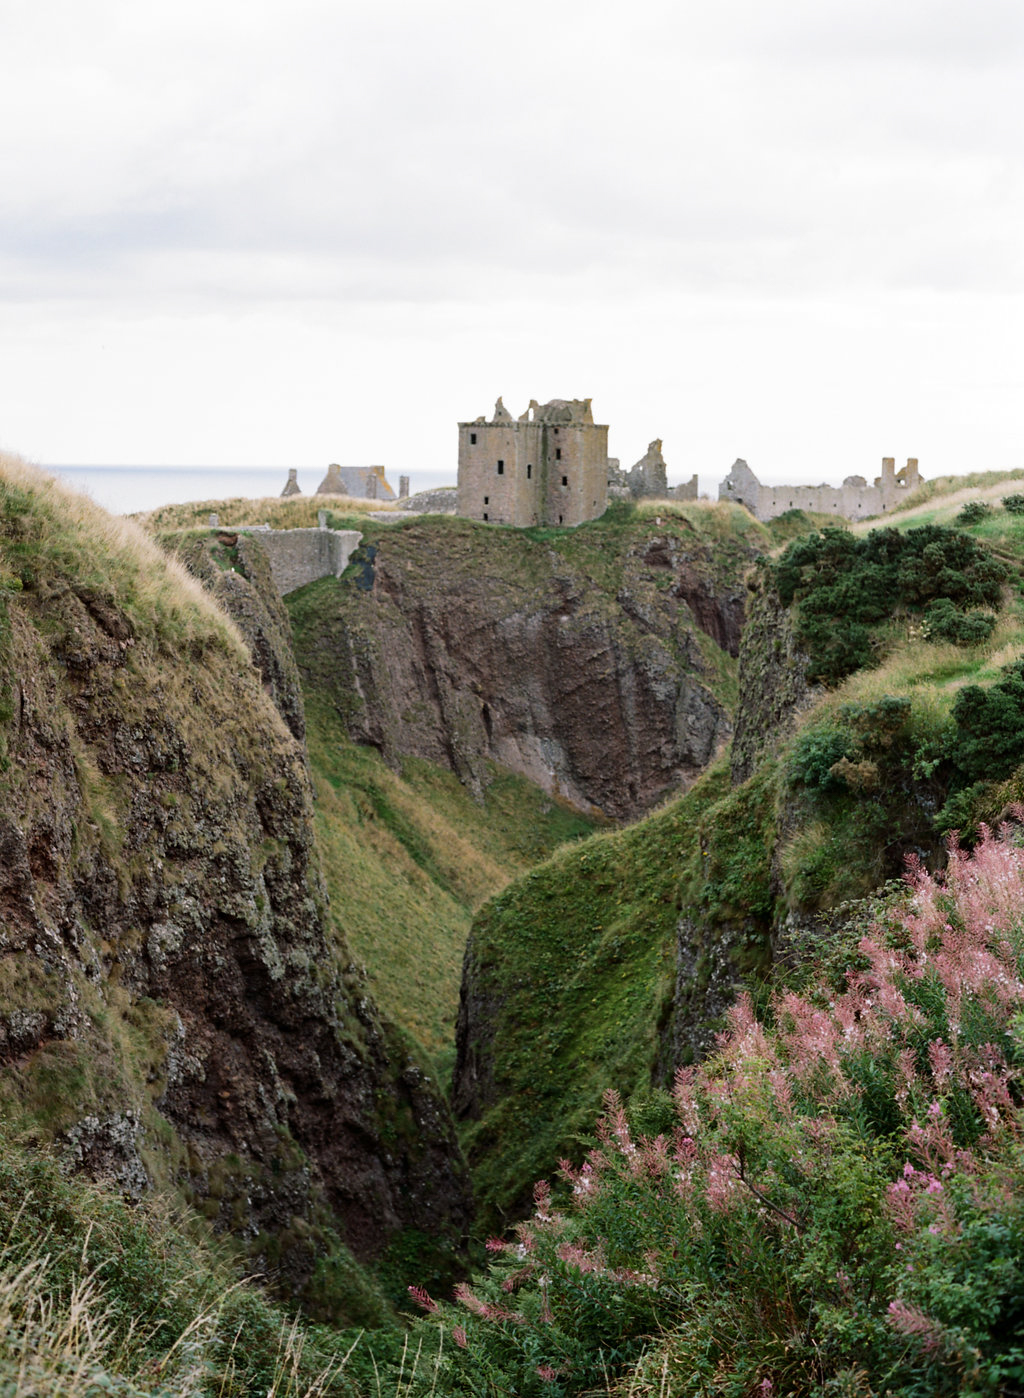 Scotland-Prewedding-highlands-castle-Engagment-Photos-Katie-Grant (120 of 139).jpg